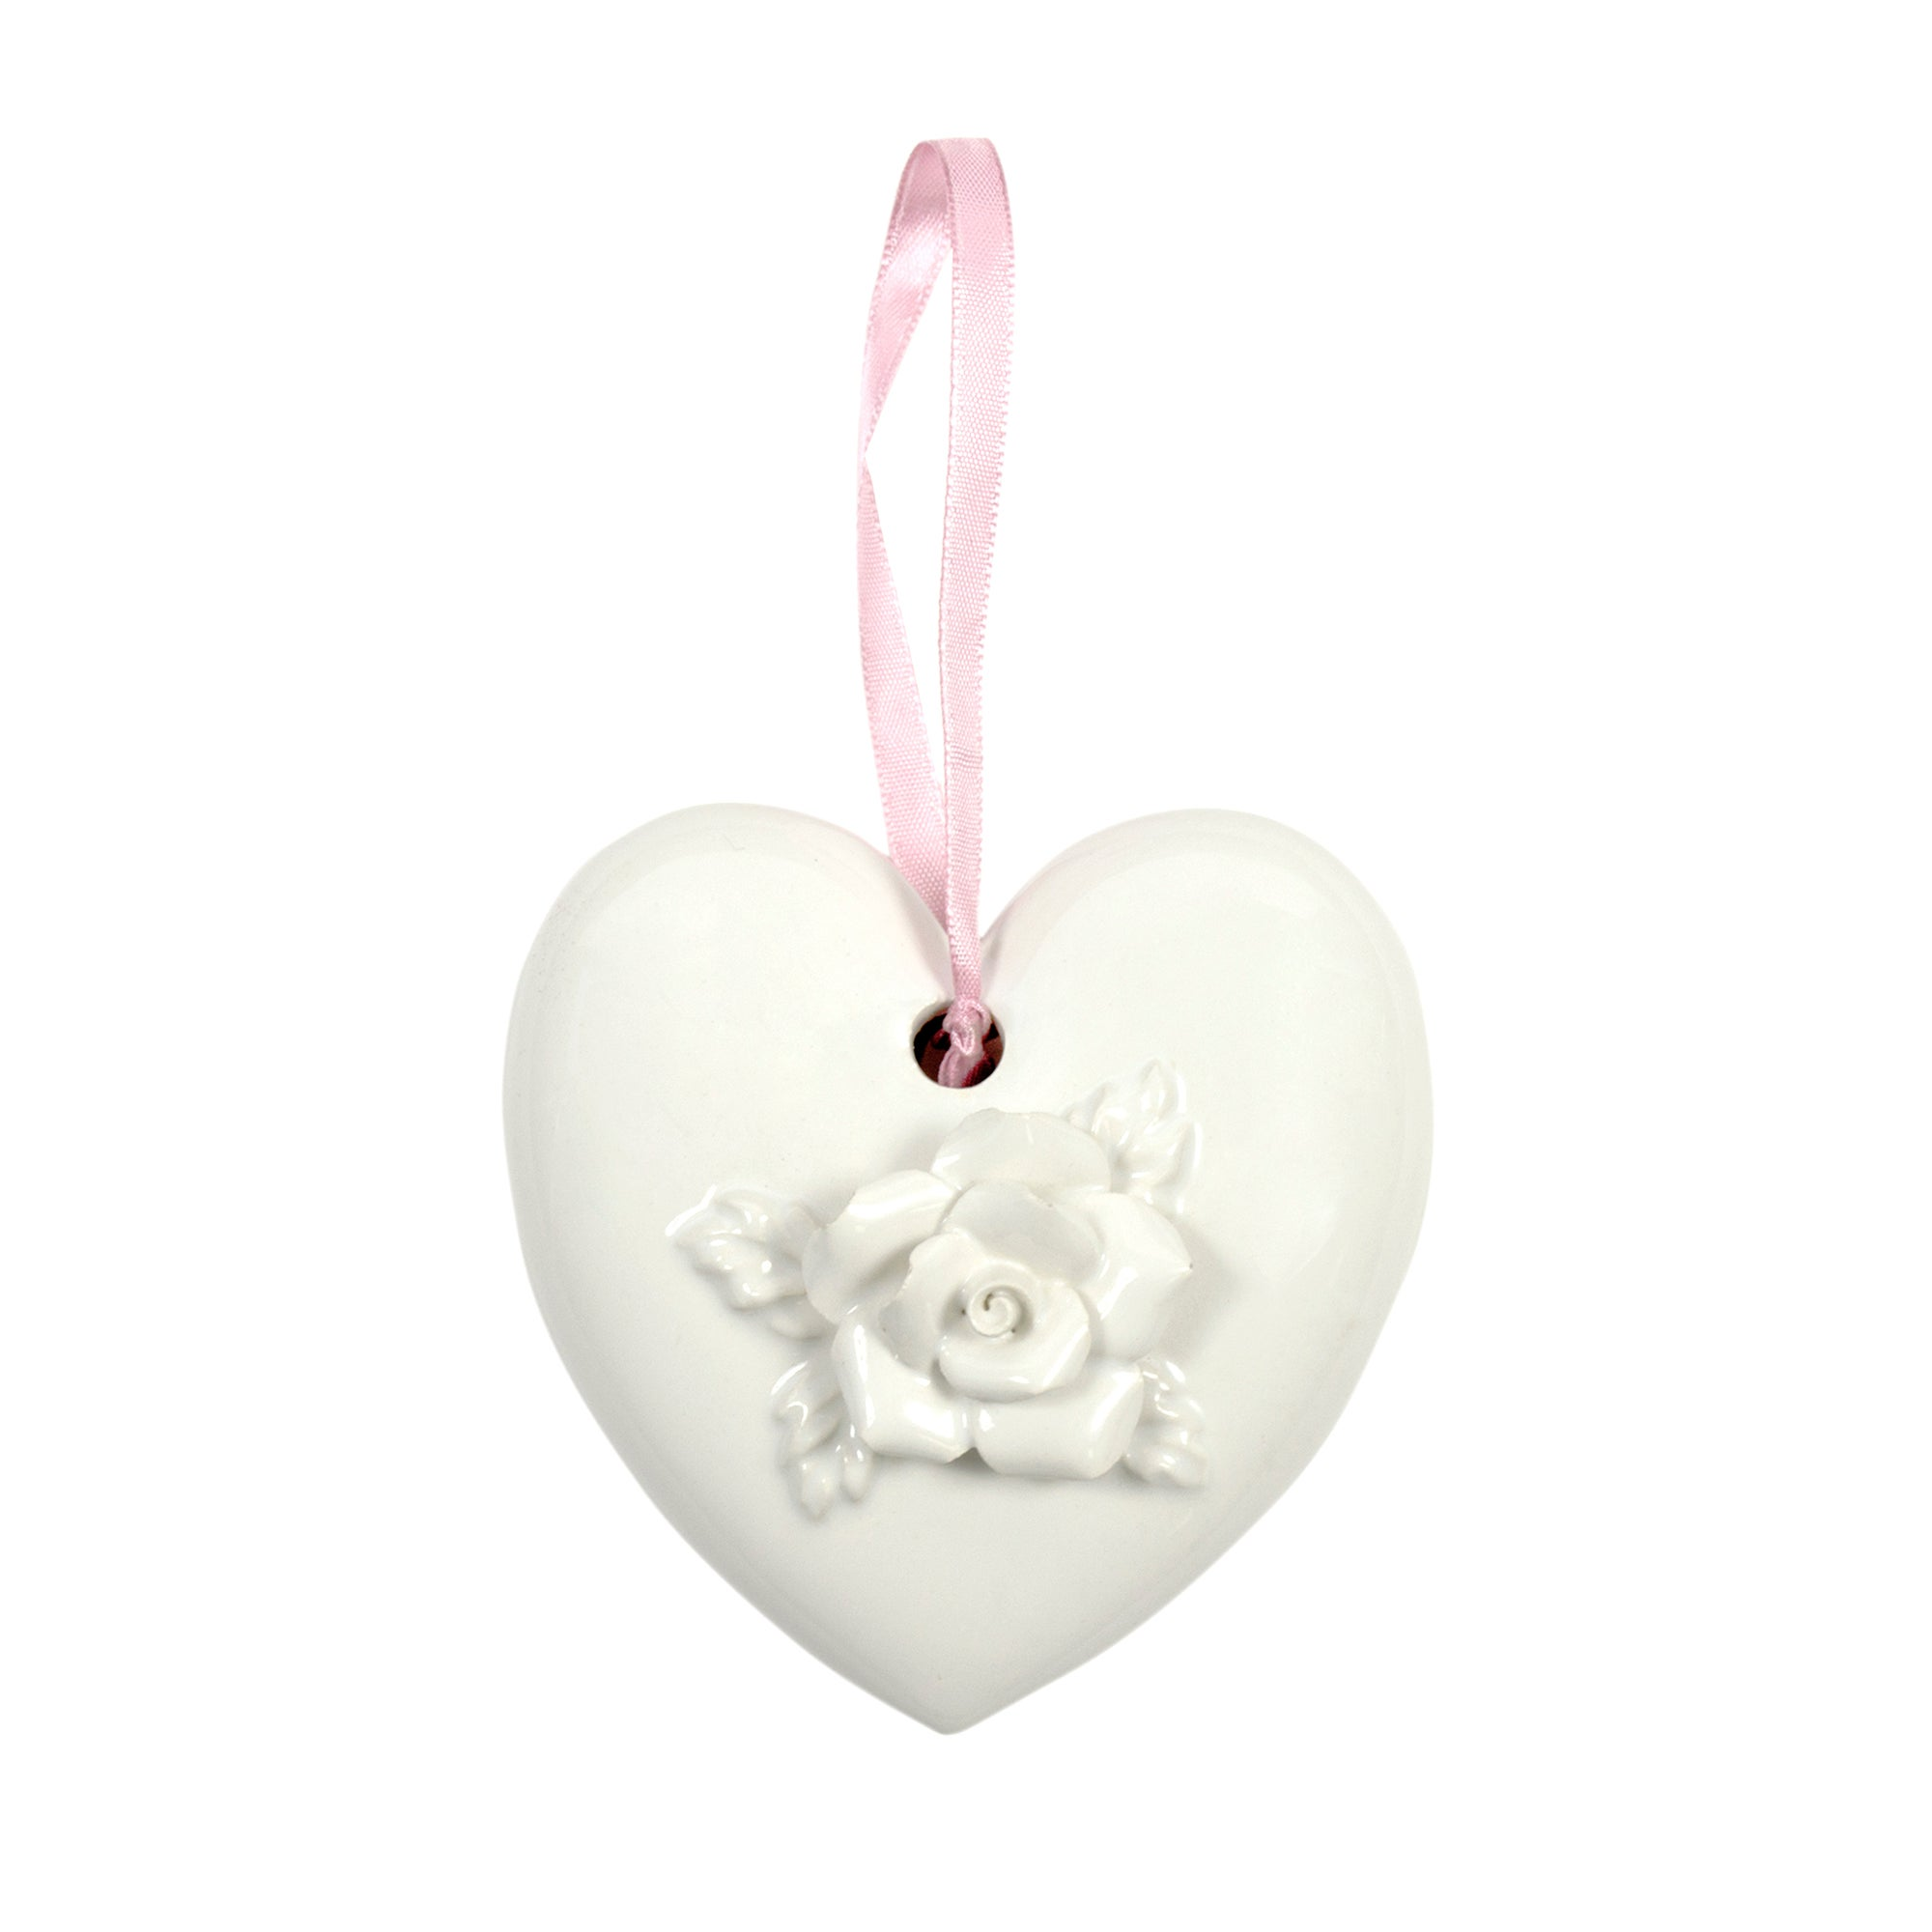 Rose and Ellis Clarendon Collection Rose Hanging Heart